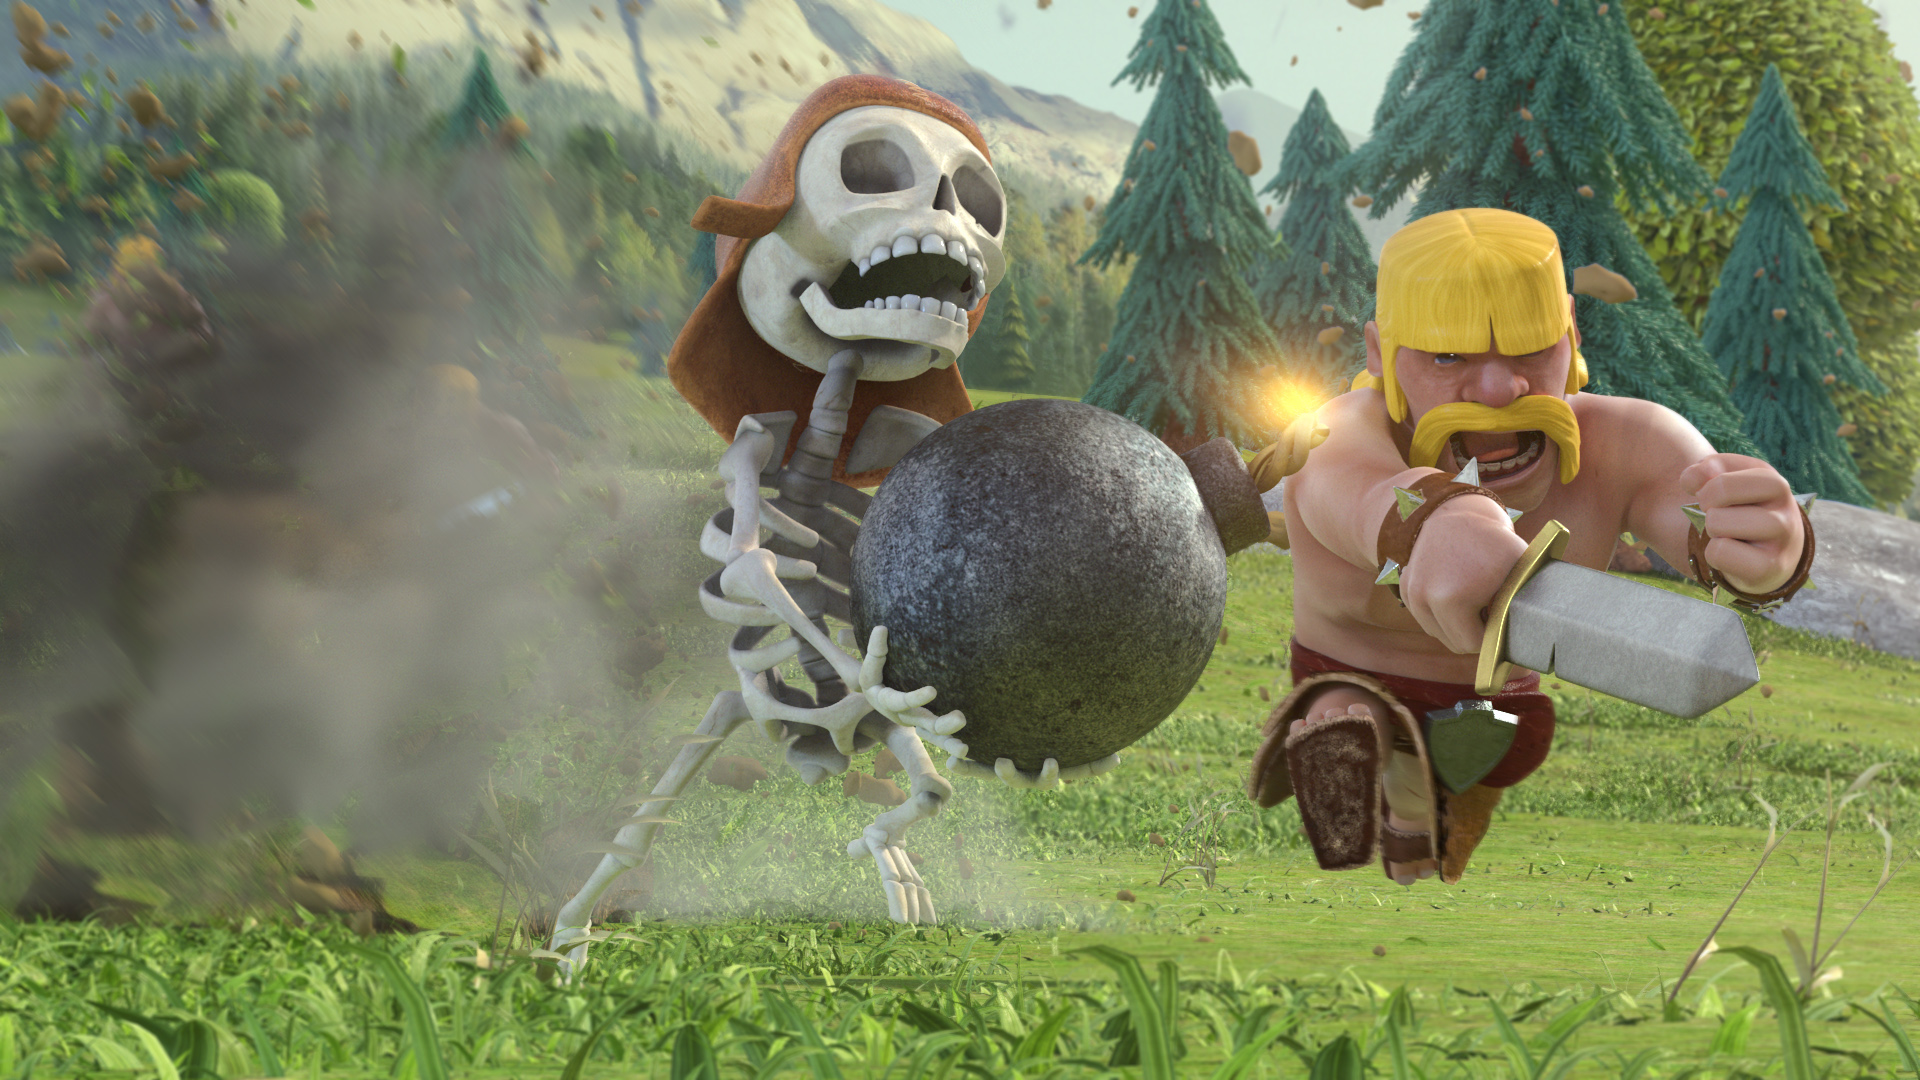 Barbarian Clash Of Clans Hd Hd Games 4k Wallpapers: Clash Of Clans Barbarian Wallpapers